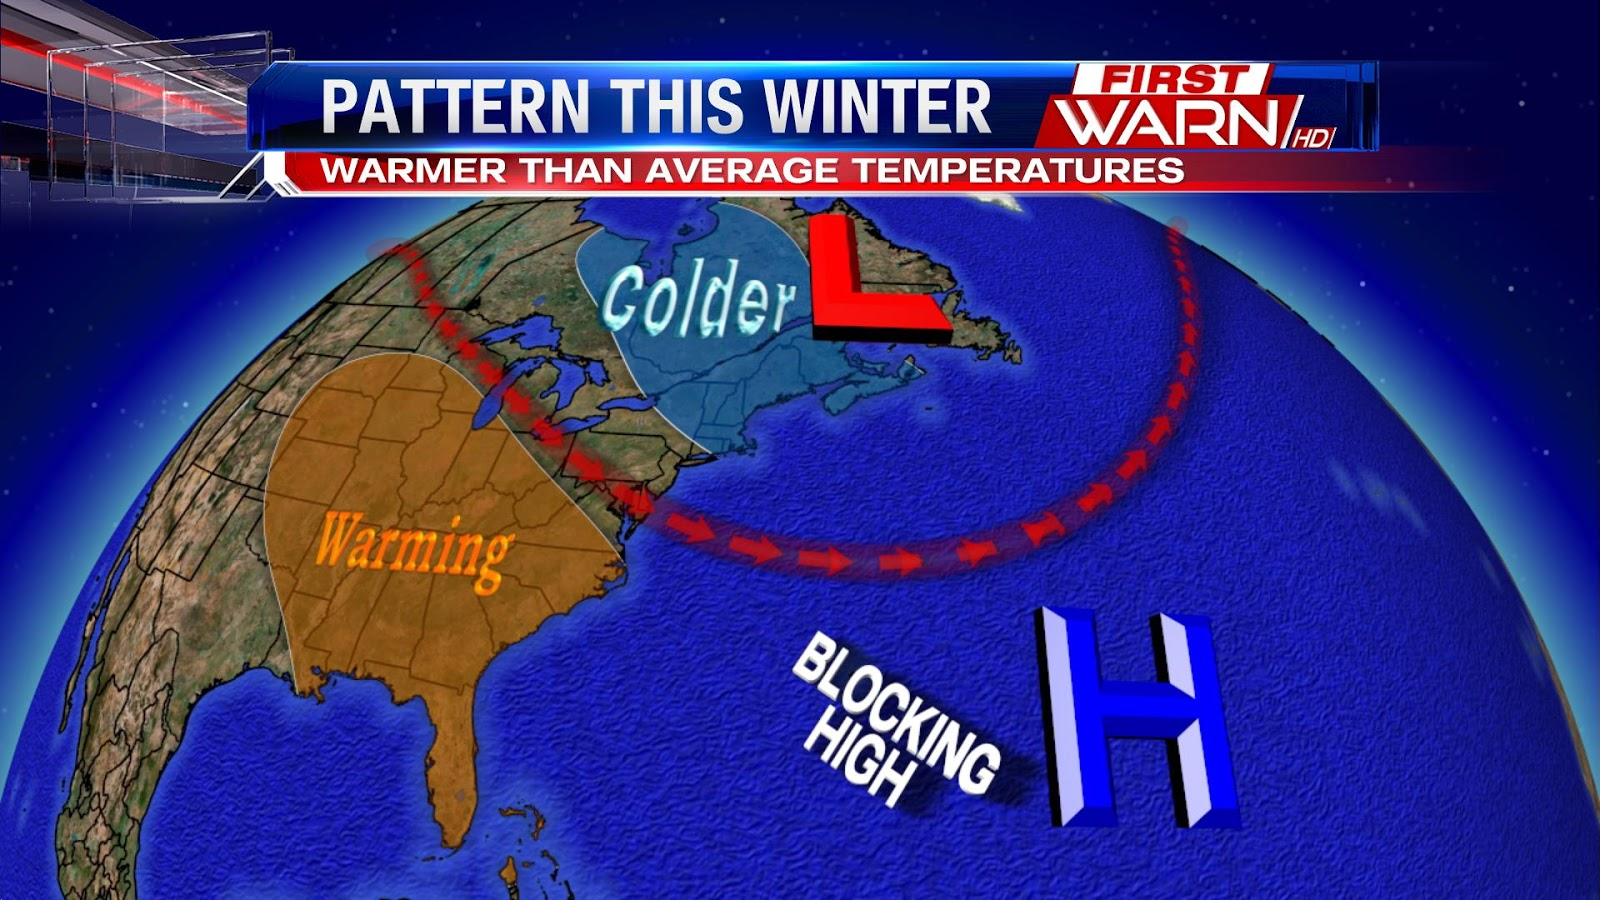 the pattern this winter thus far has not lacked attention a blocking high pressure system in the atlantic ocean and a low pressure system stuck near